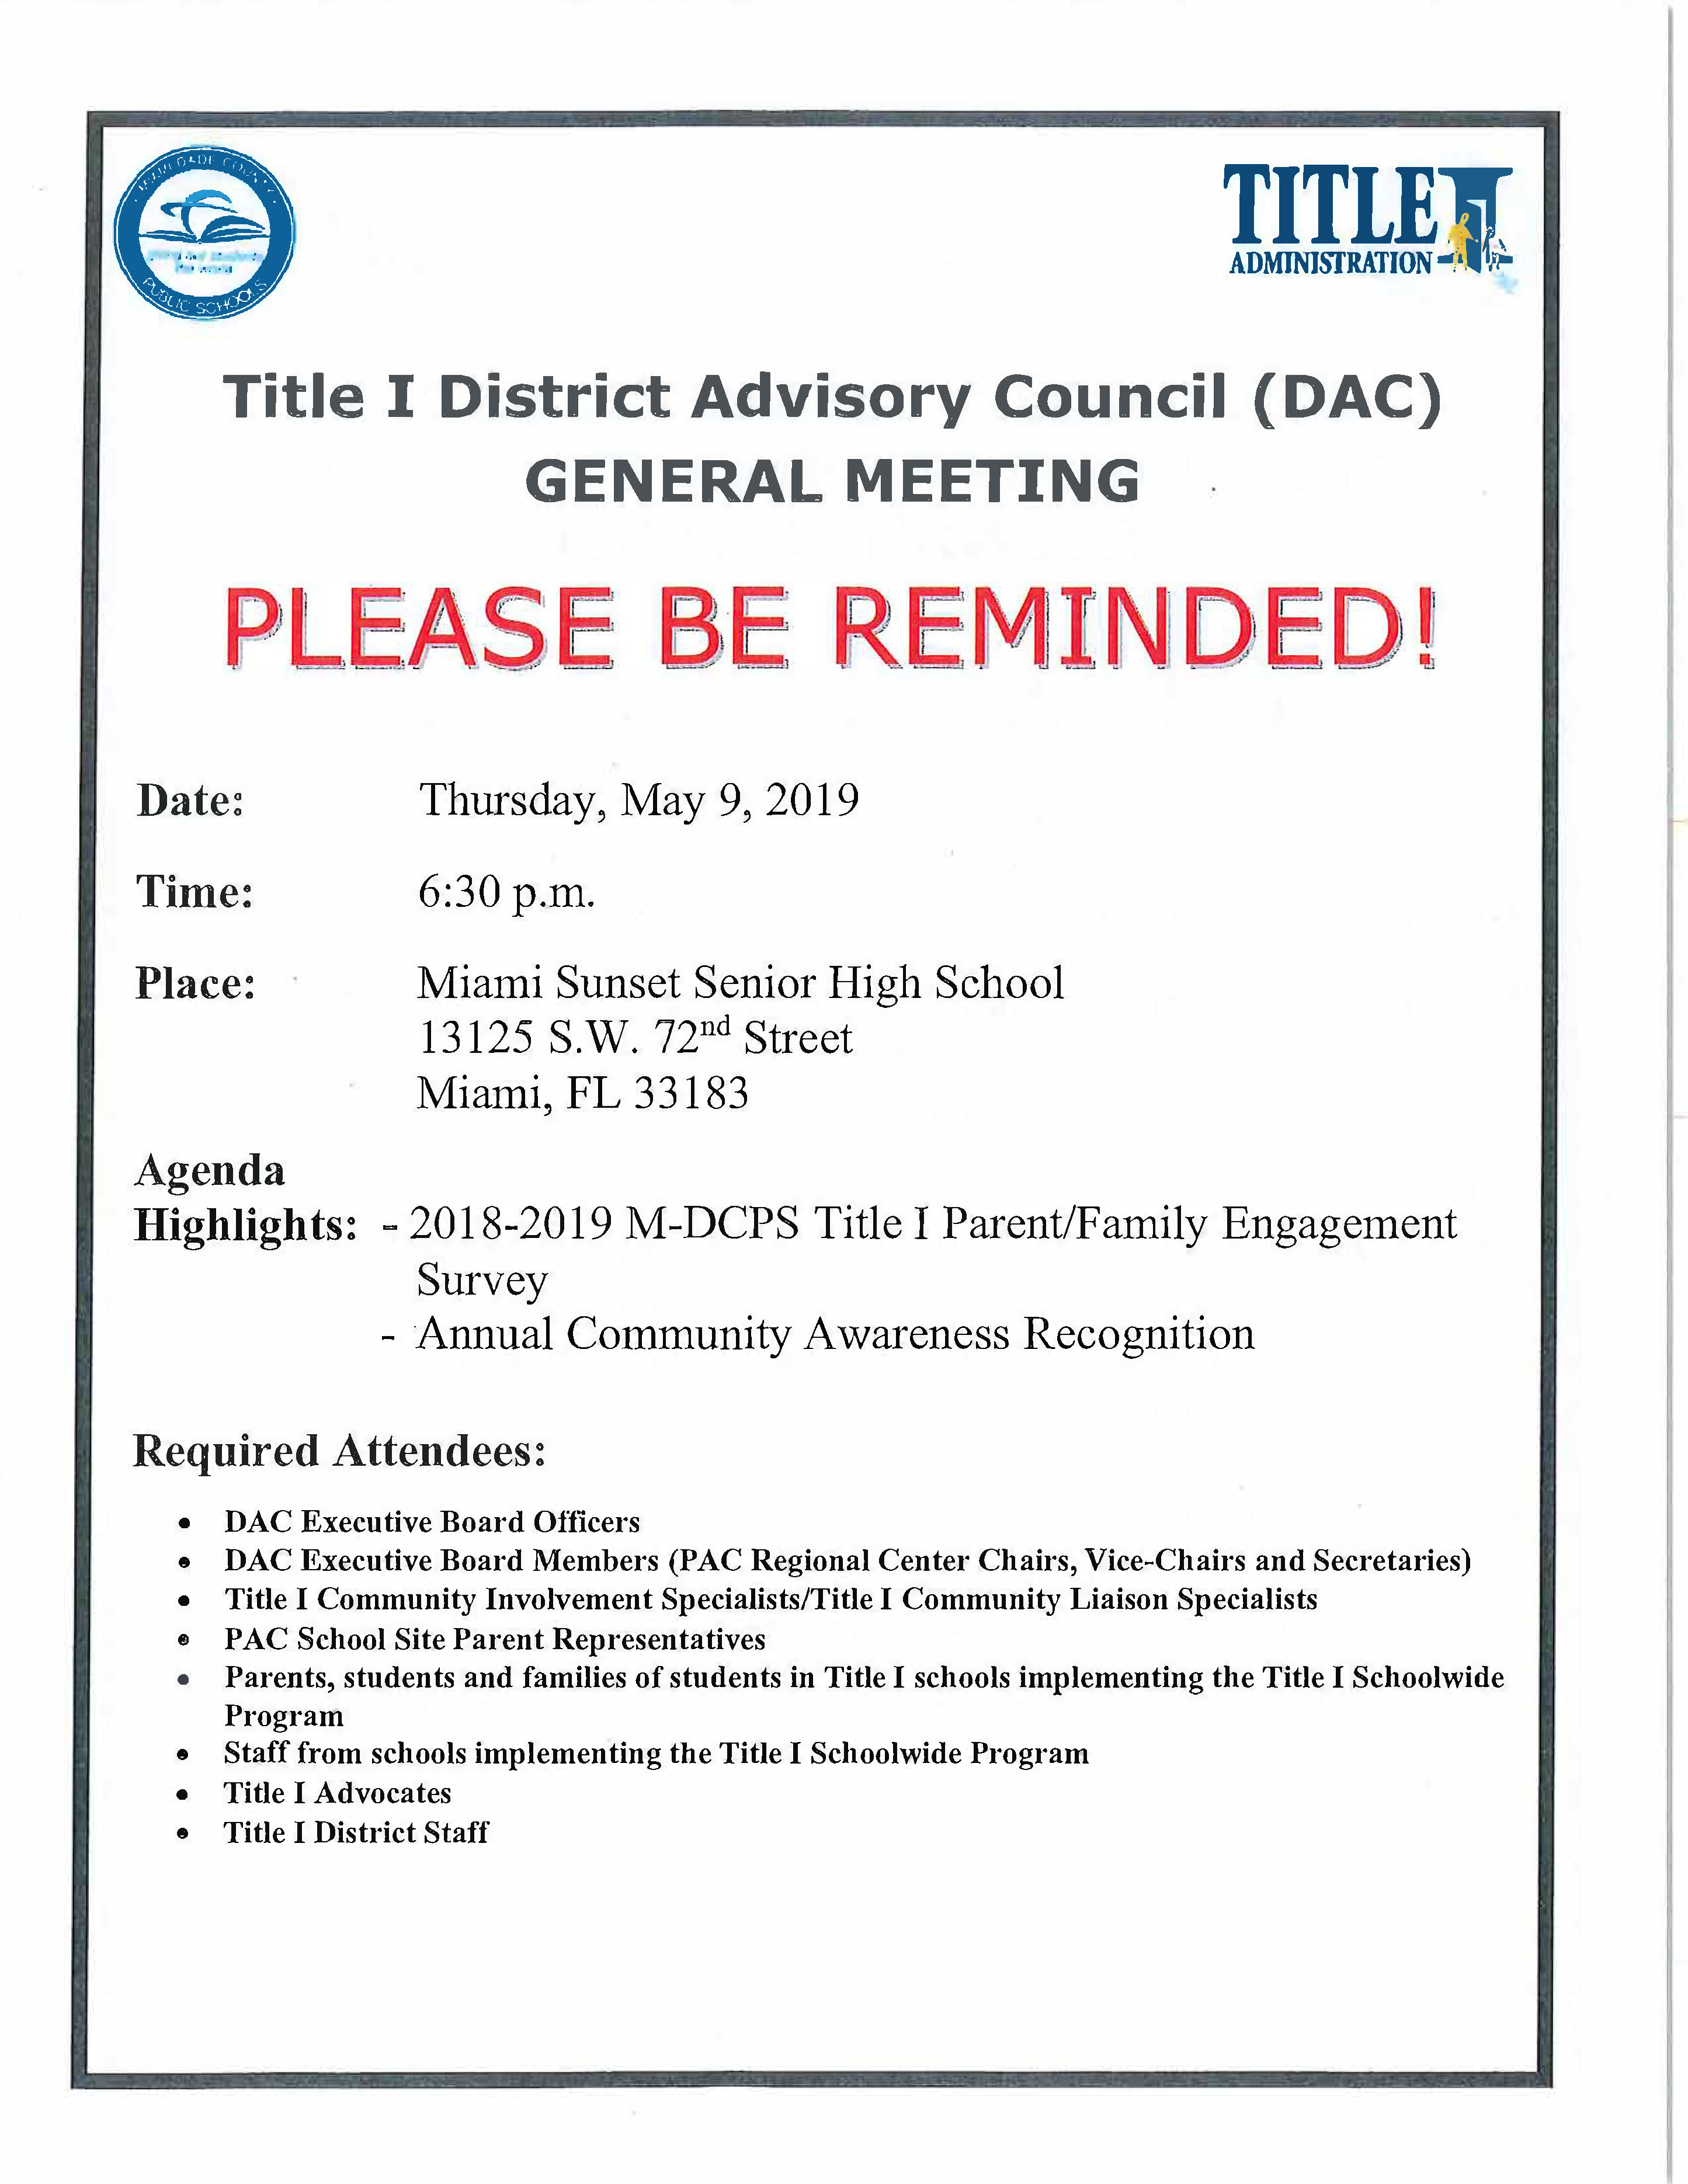 Title I DAC Meeting 5.9.19 English